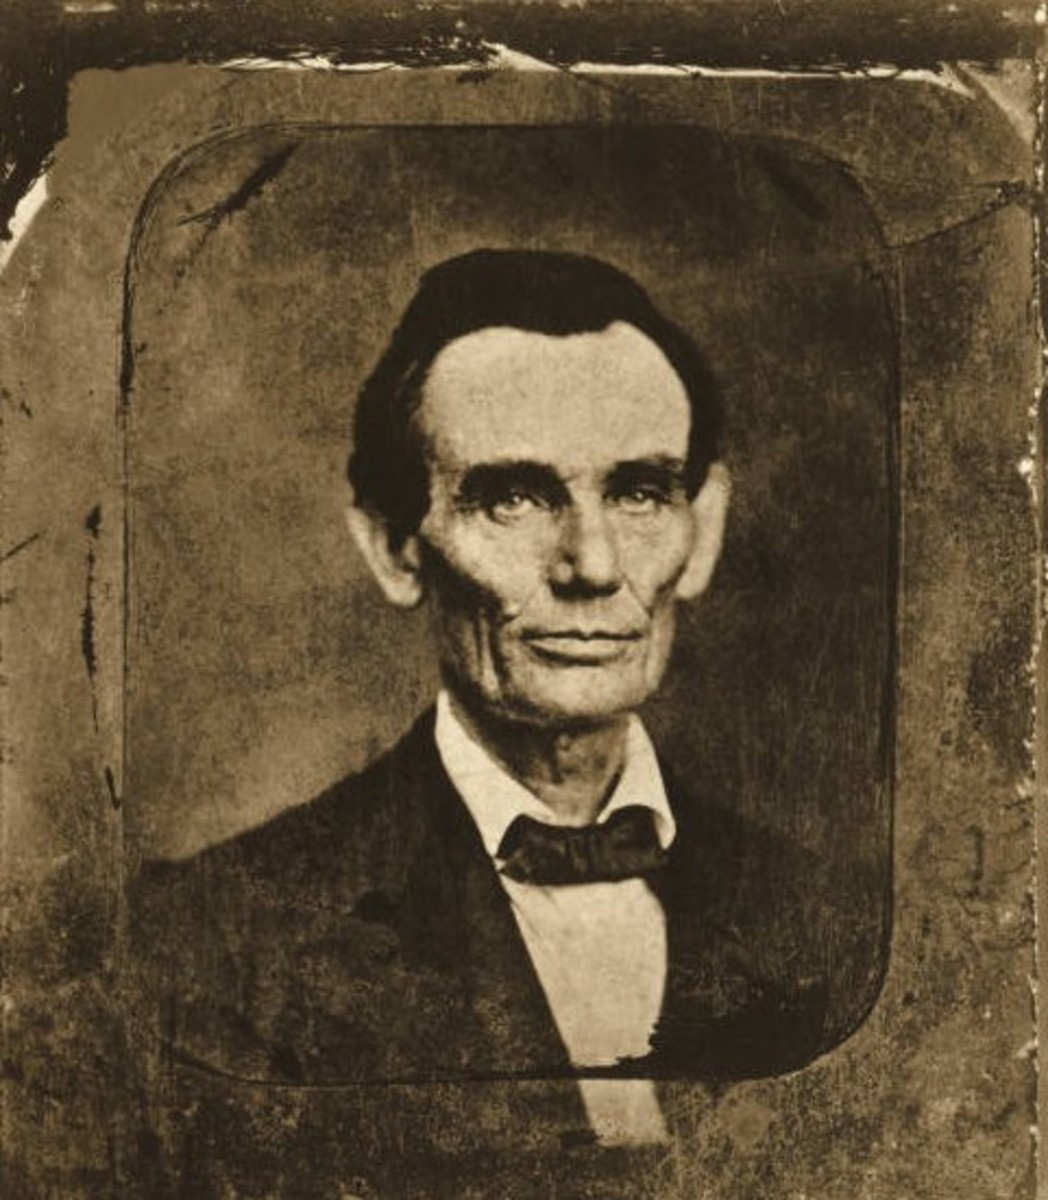 myths-and-truths-about-frederick-douglas-and-abe-lincoln